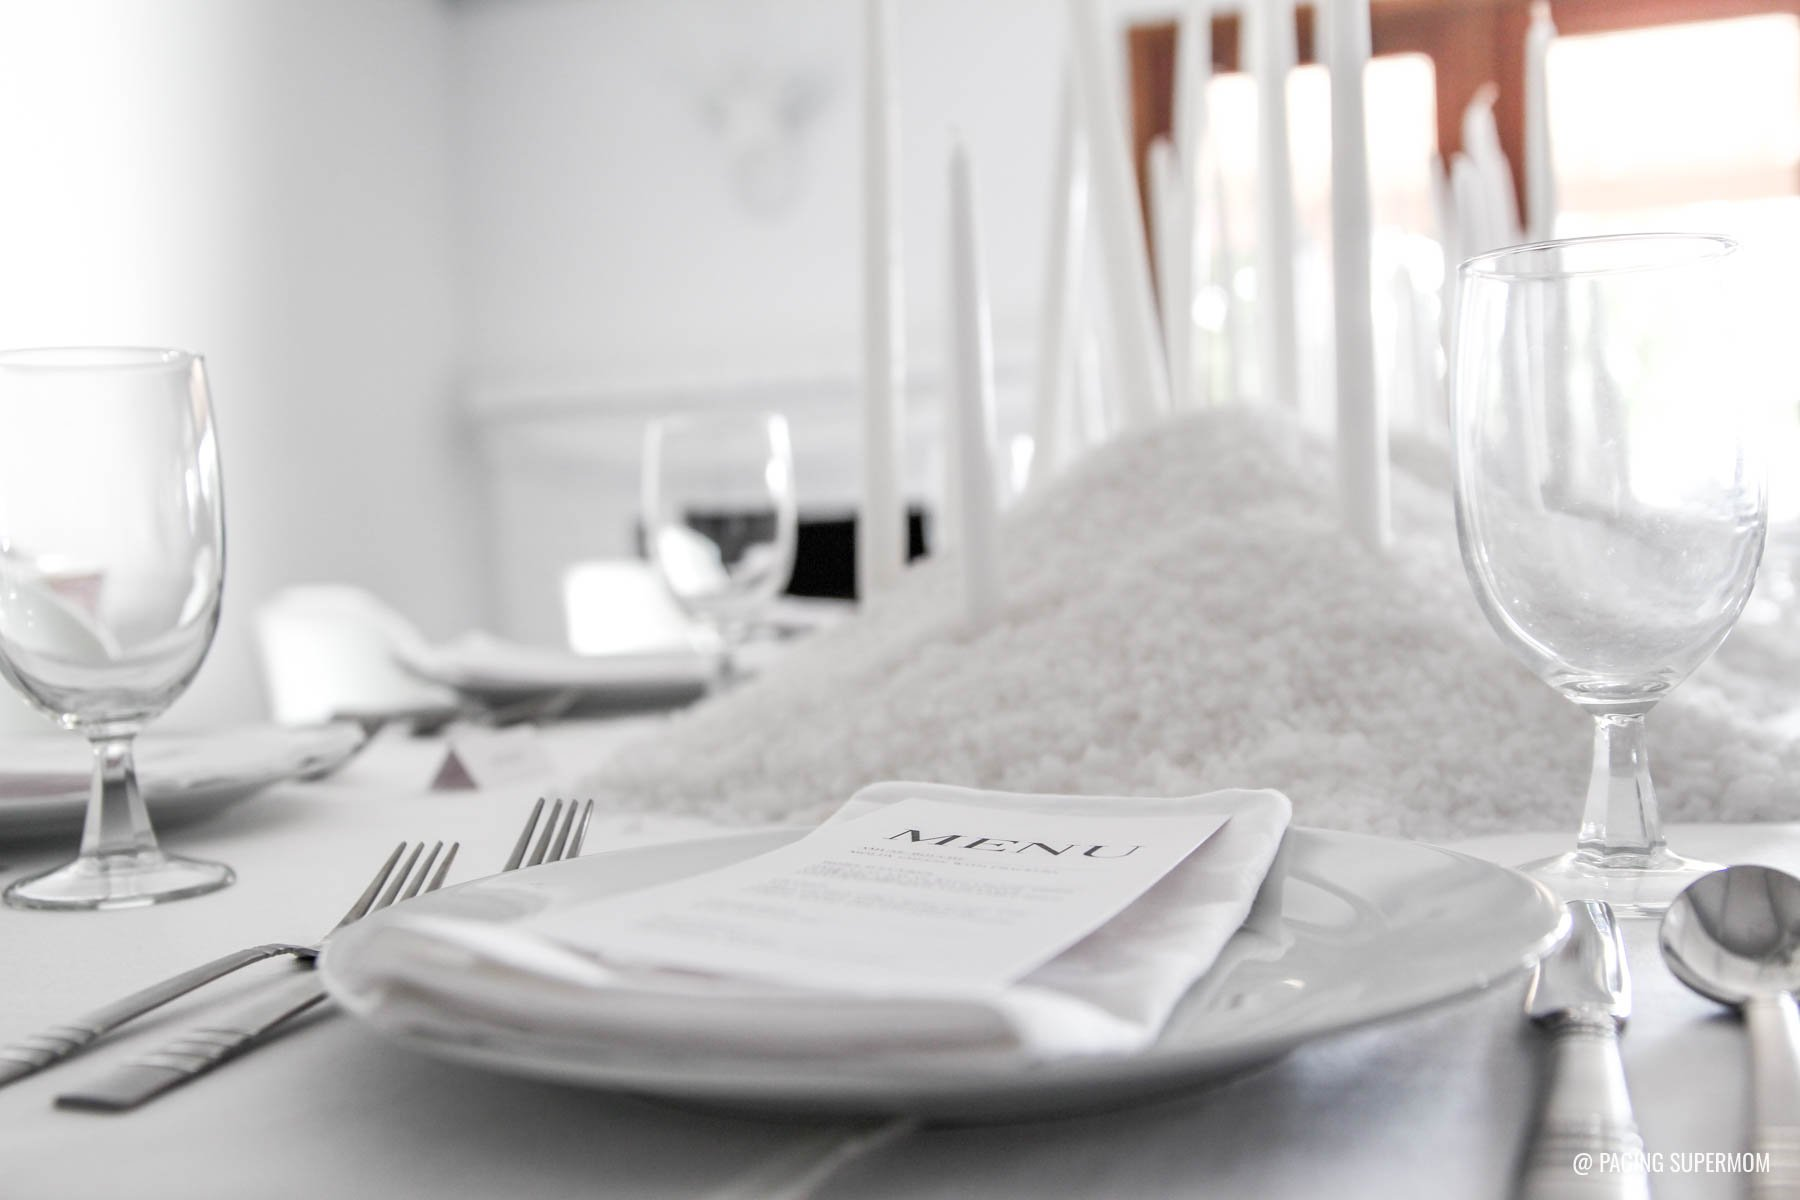 White Witch - A Sophisticated Halloween Dinner Party via @PagingSupermom